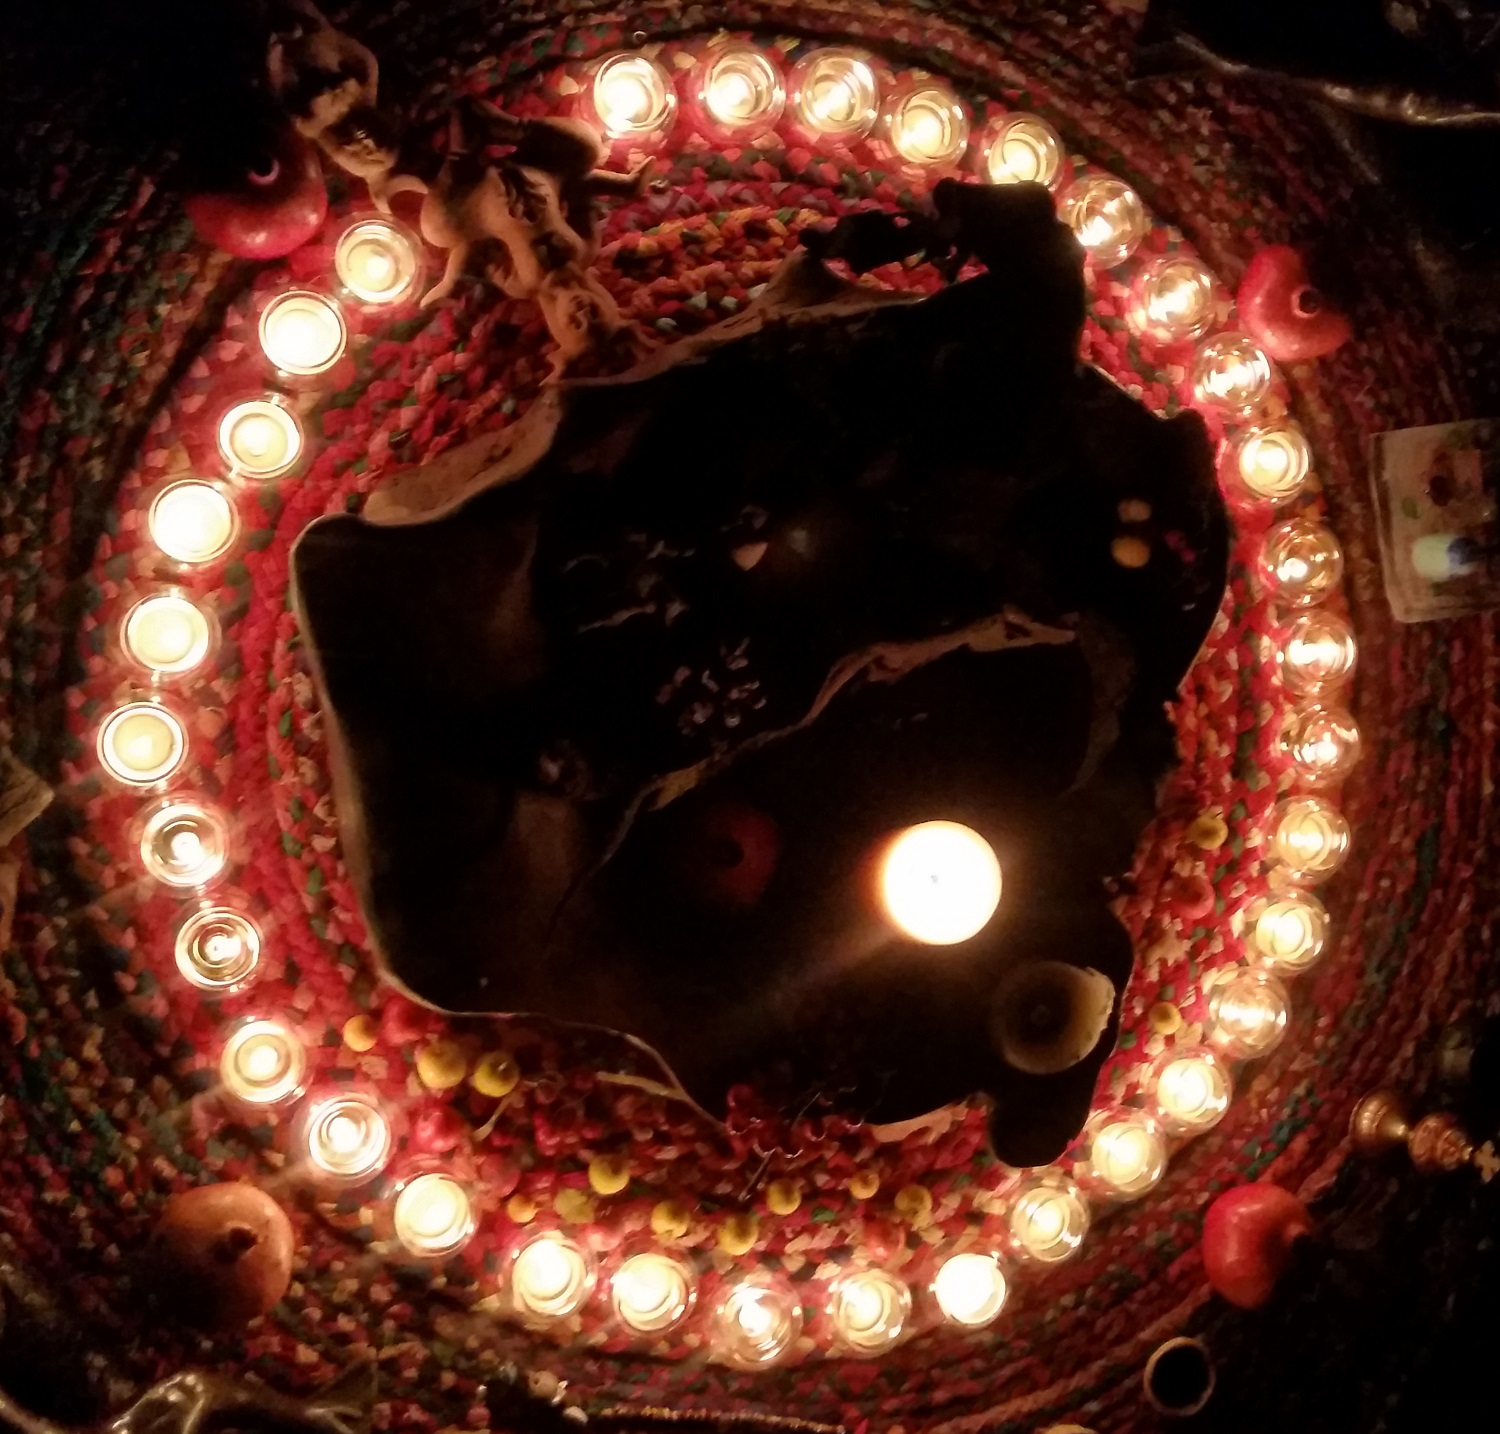 Altar by candle light